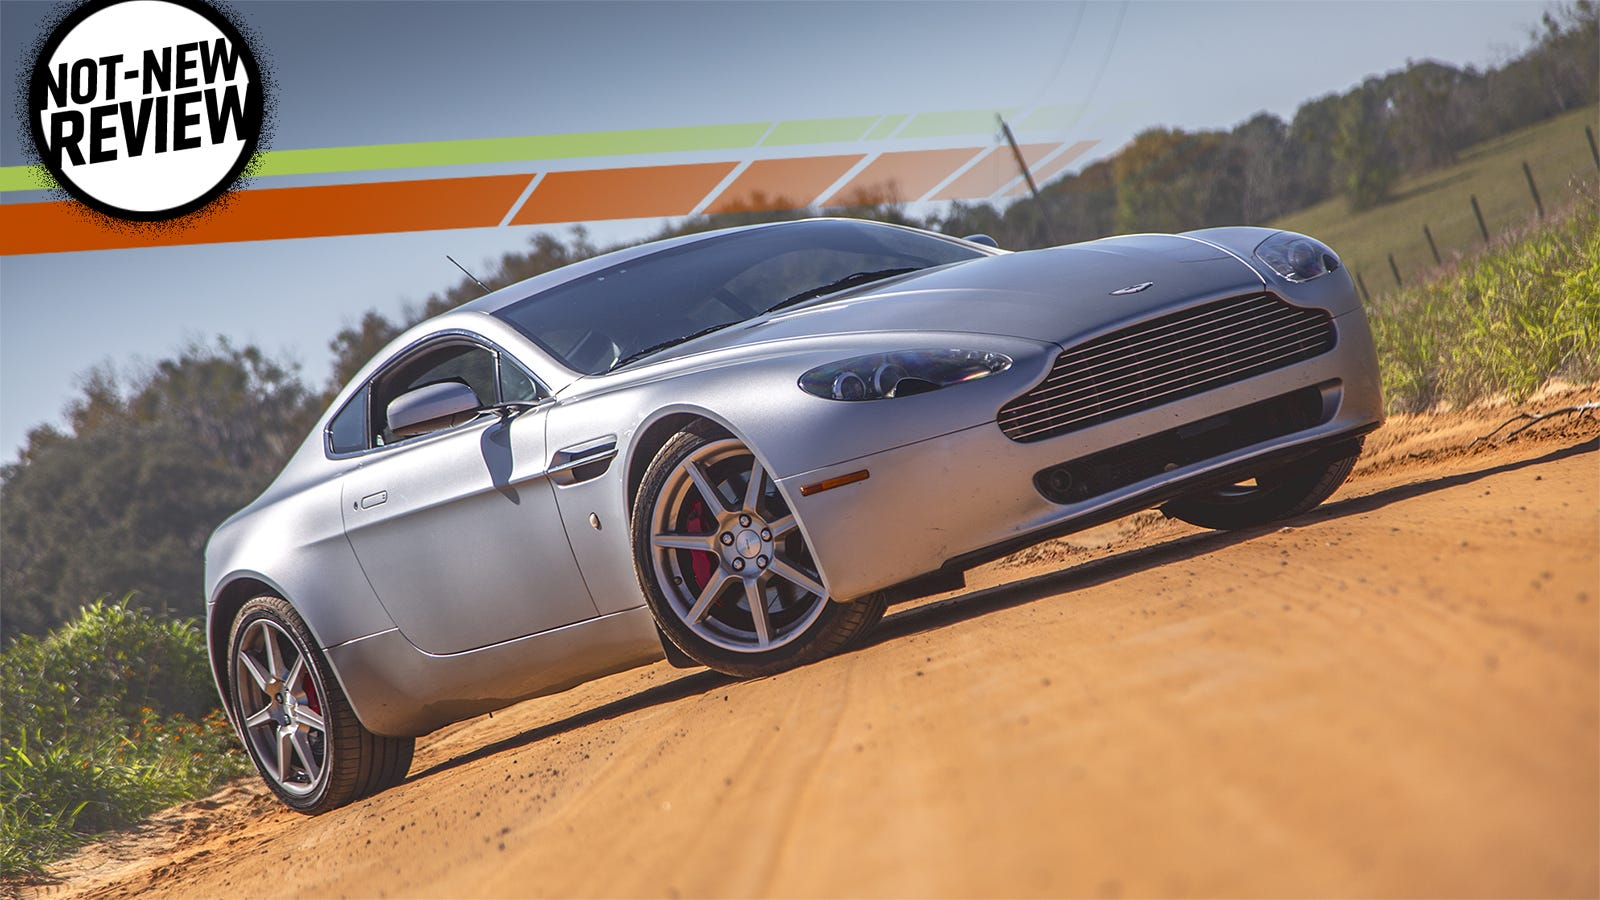 The Aston Martin V12 Vantage Is The Best Used Exotic Car ... | aston martin parts online